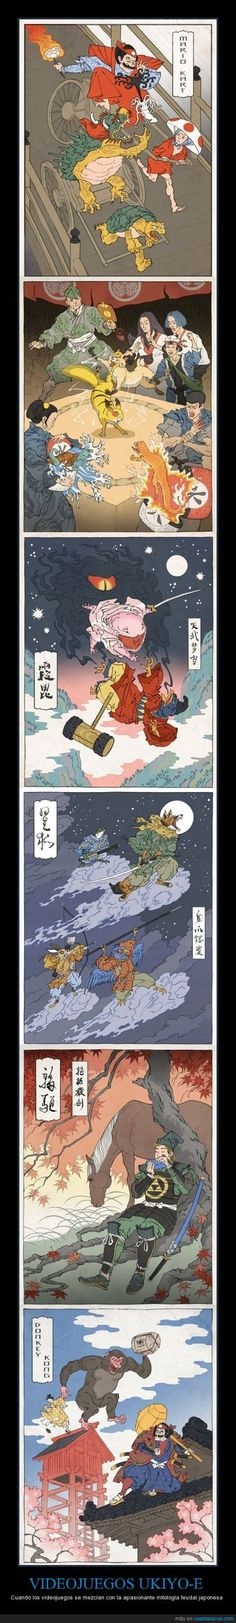 UKIYO-E VIDEOGAMES - When videogames mix with the fascinating Japanese feudal mythology